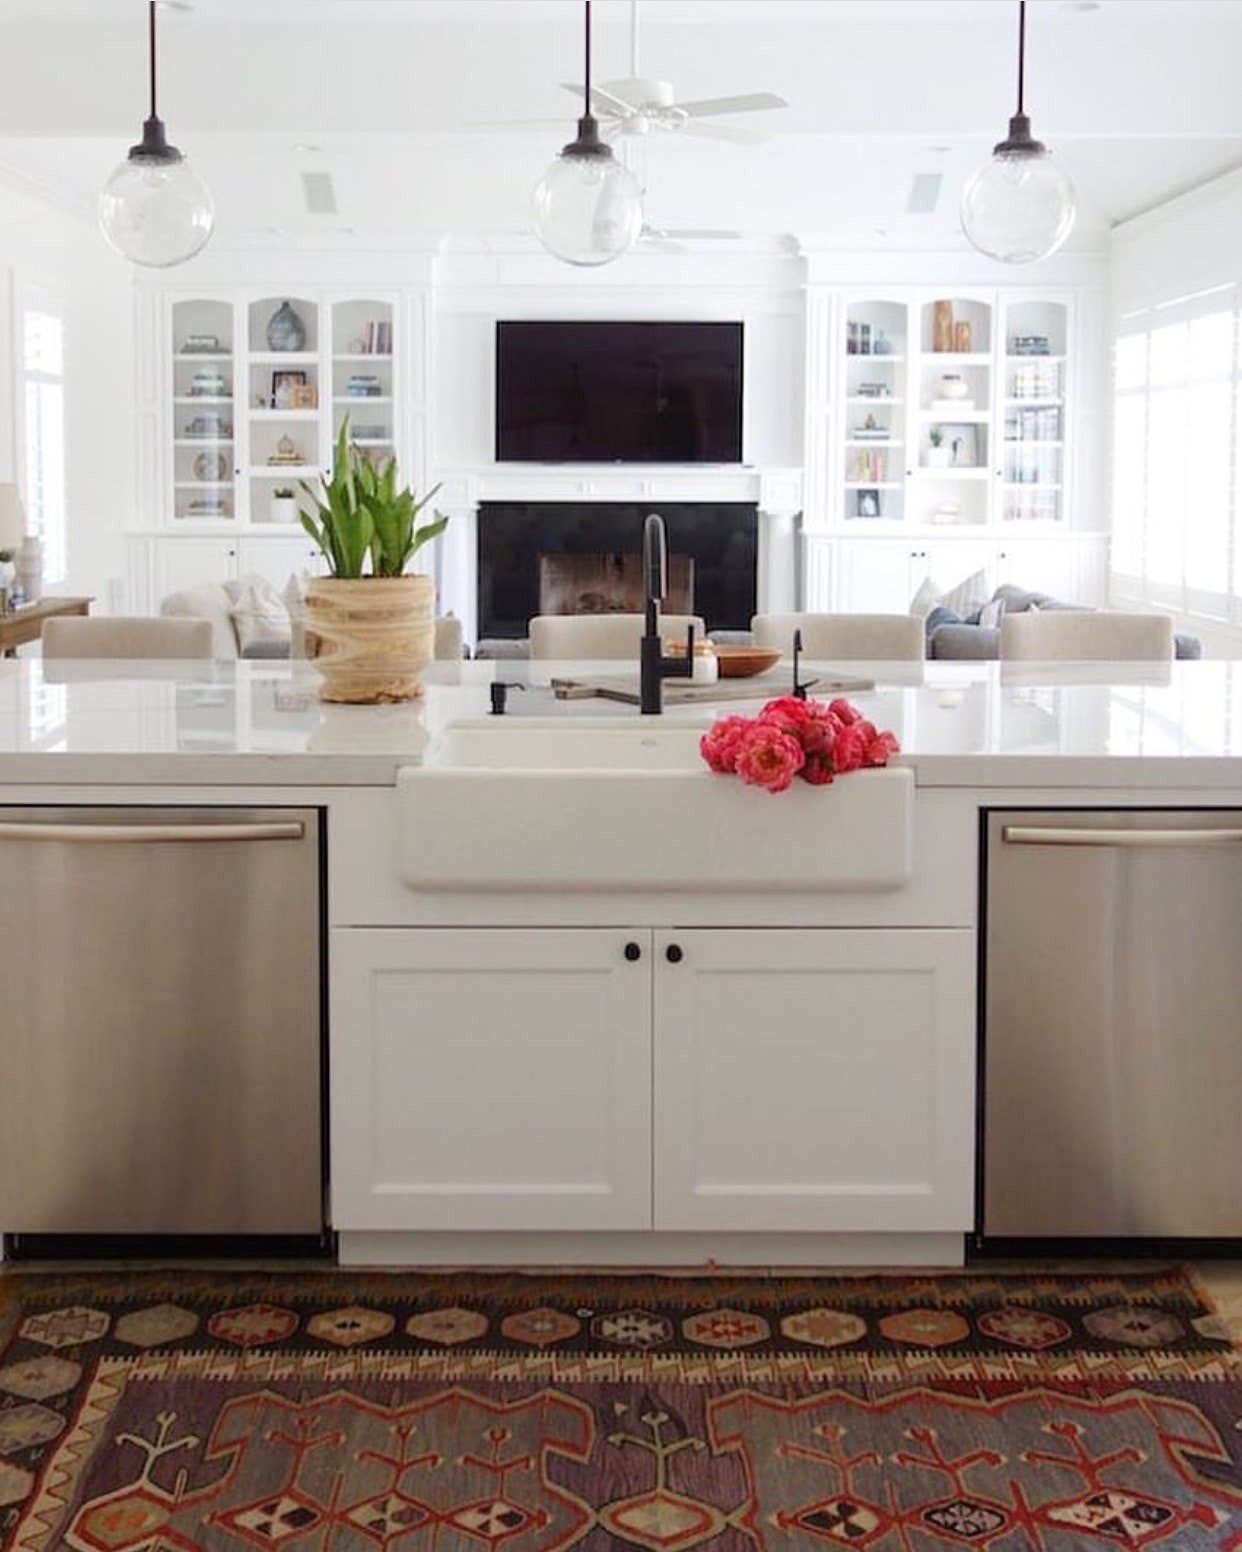 Image may contain Room Indoors Interior Design Kitchen Living Room Kitchen Island Rug Electronics and Monitor